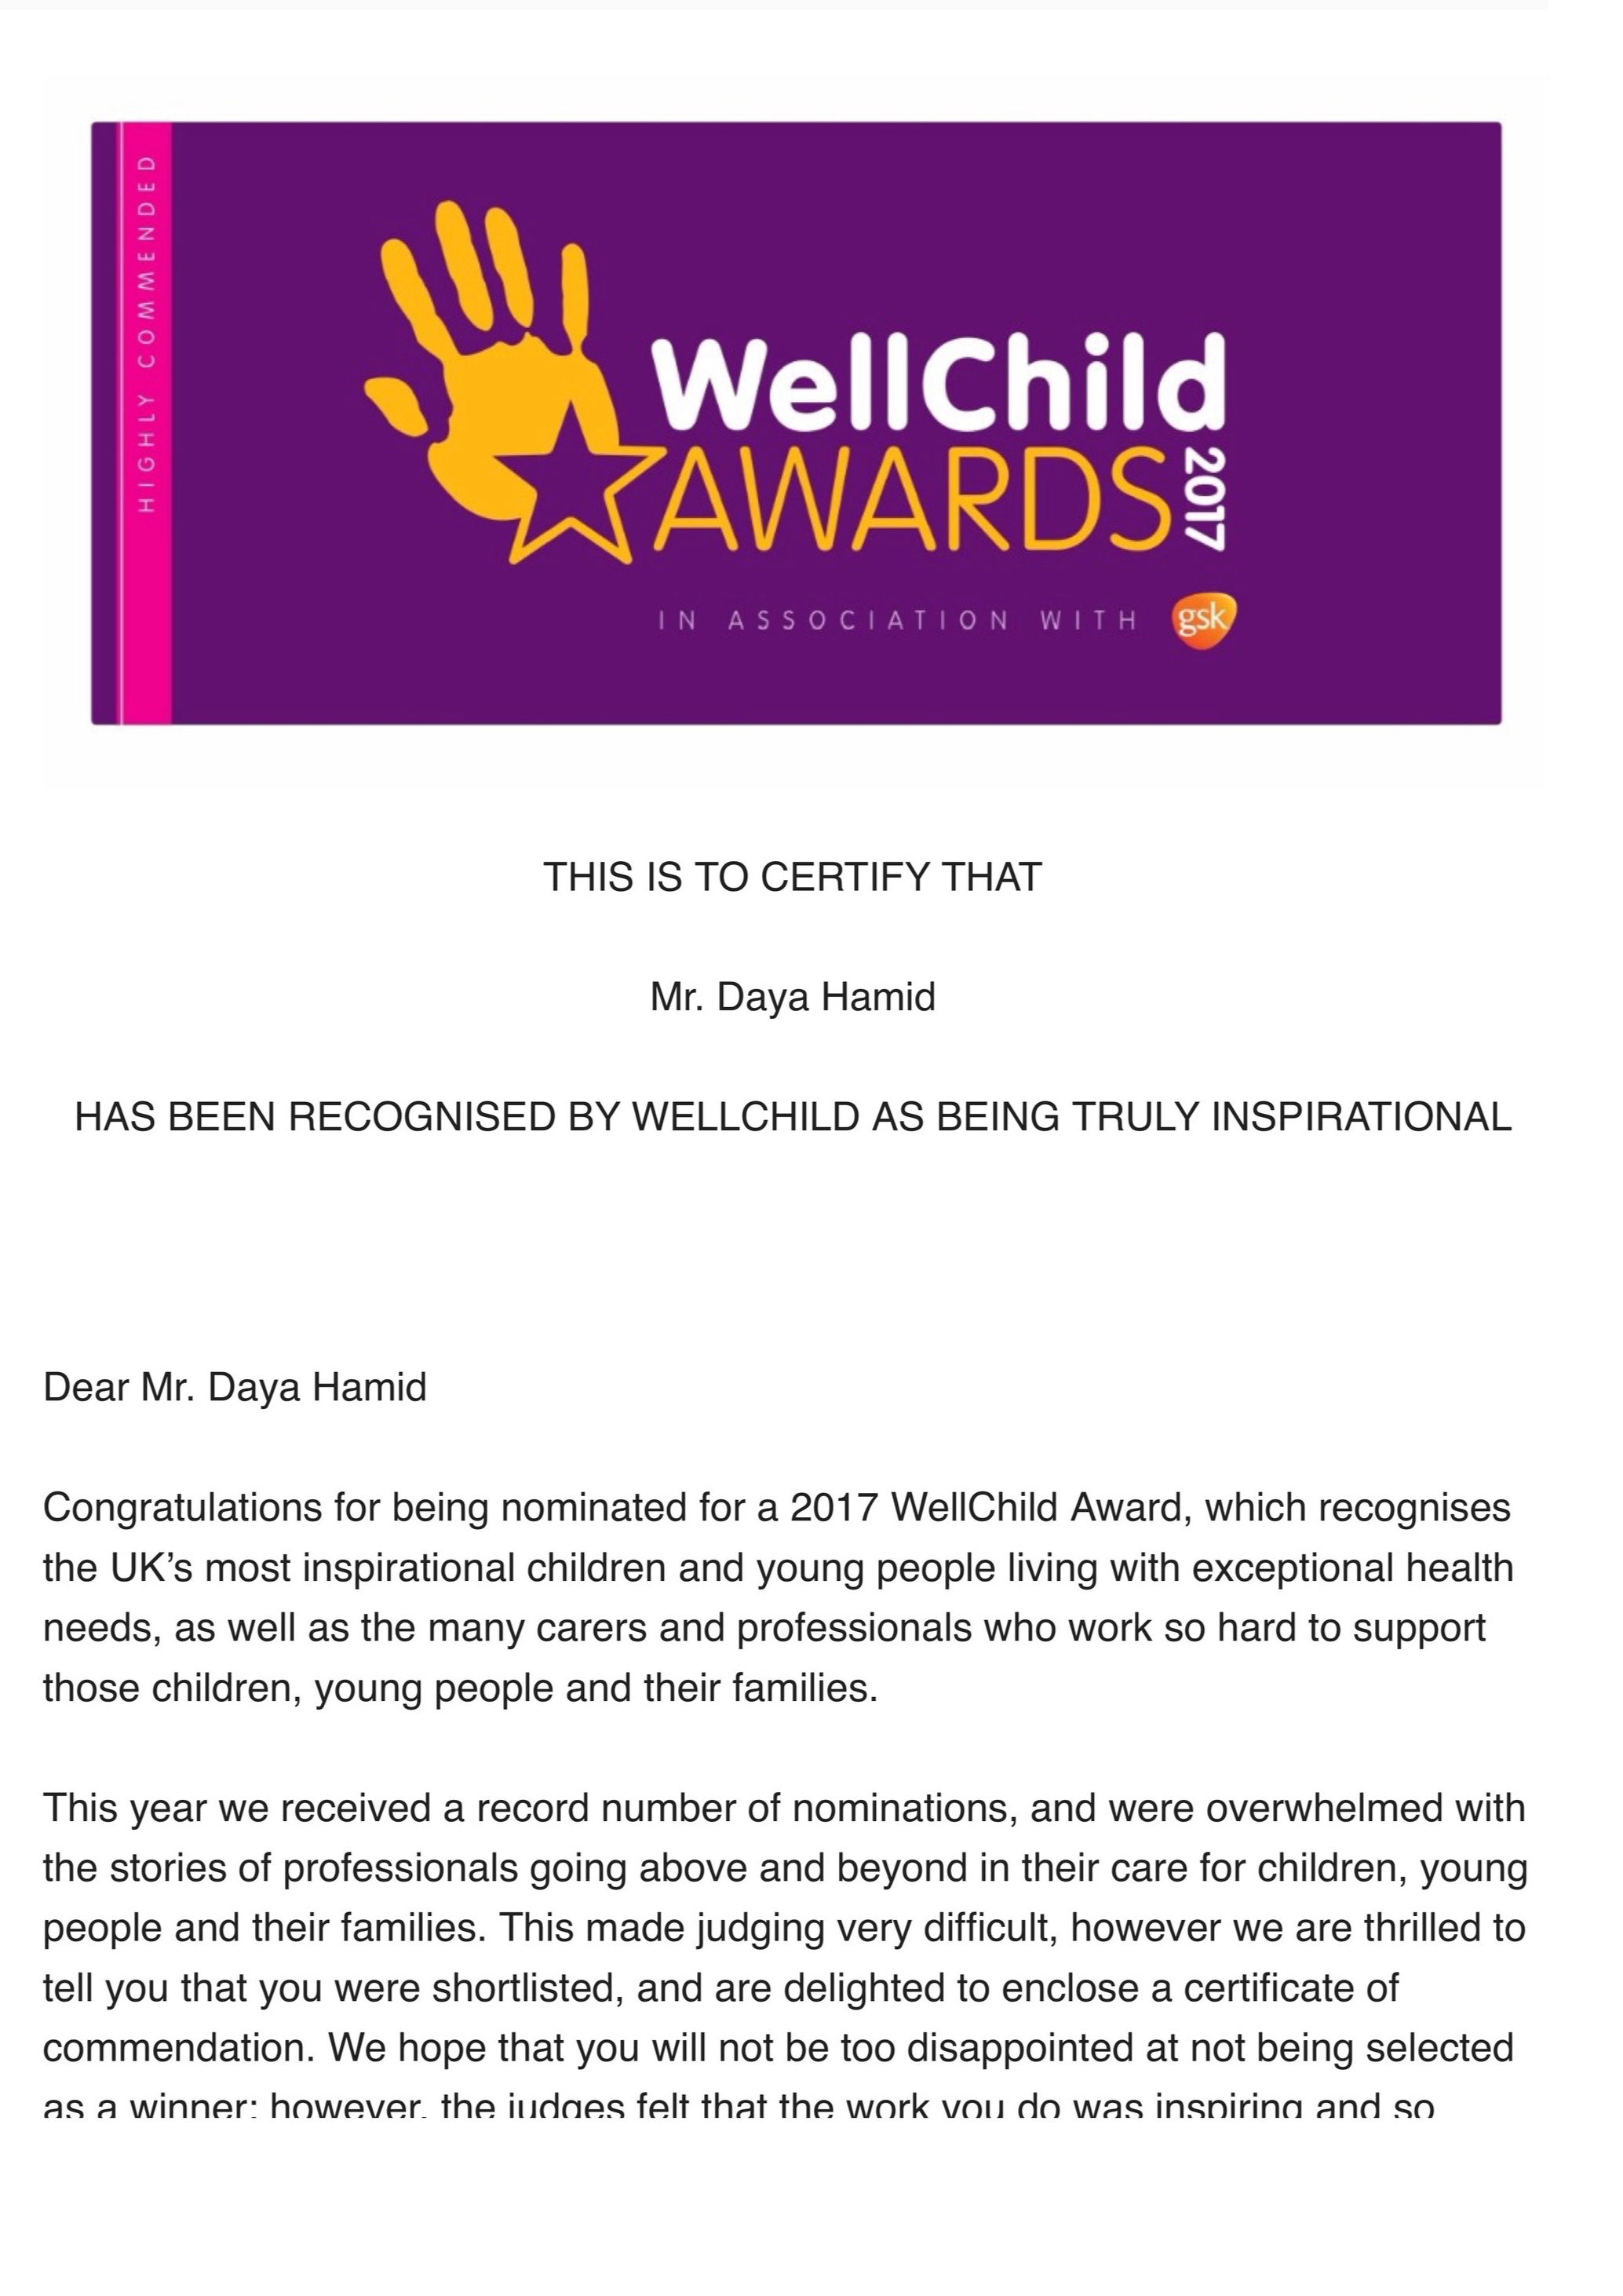 WellChild+Awards++Certificate+of+Commendation.jpg